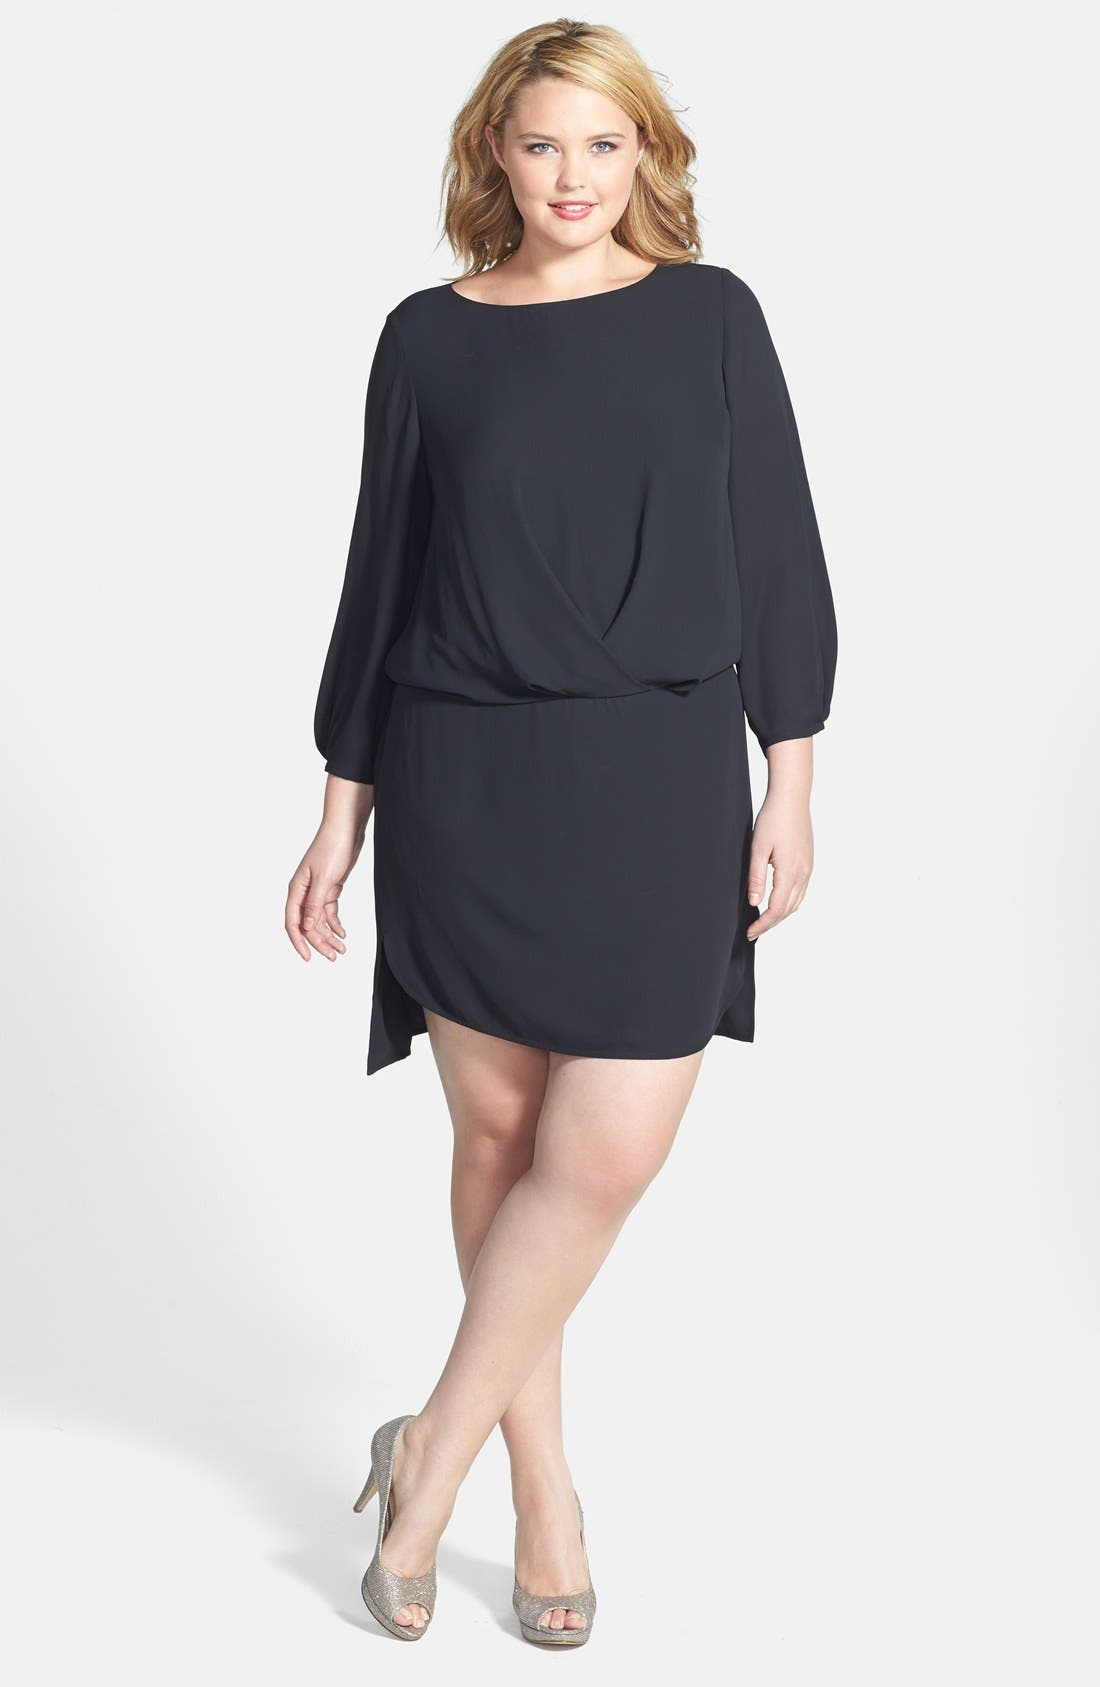 Alternate Image 1 Selected - Vince Camuto 'Center Fold' Dress (Plus Size)